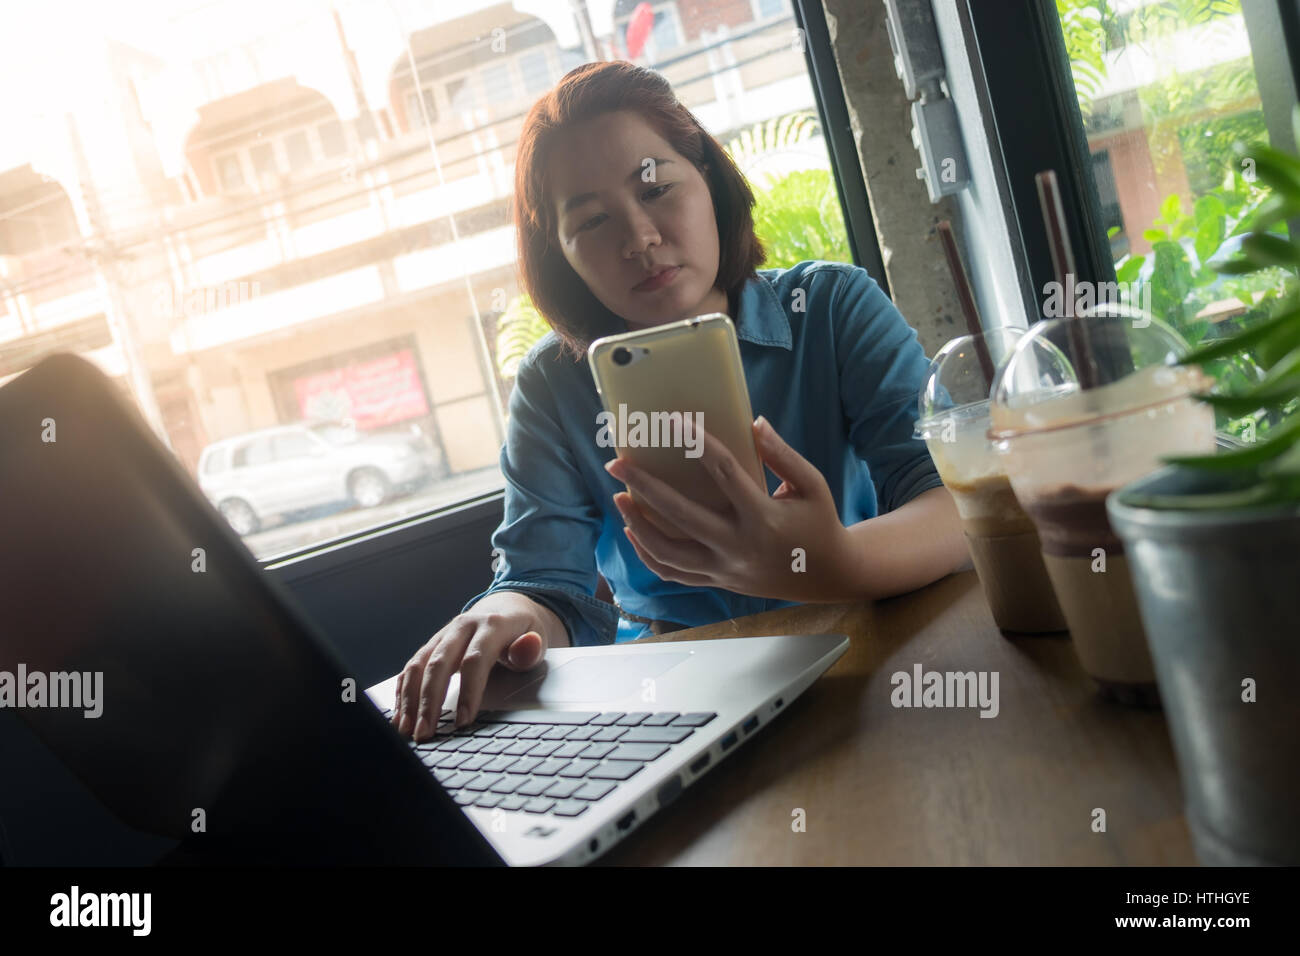 Young Asian woman using smartphone while working in coffee shop. Freelance worker on workday with laptop concept - Stock Image